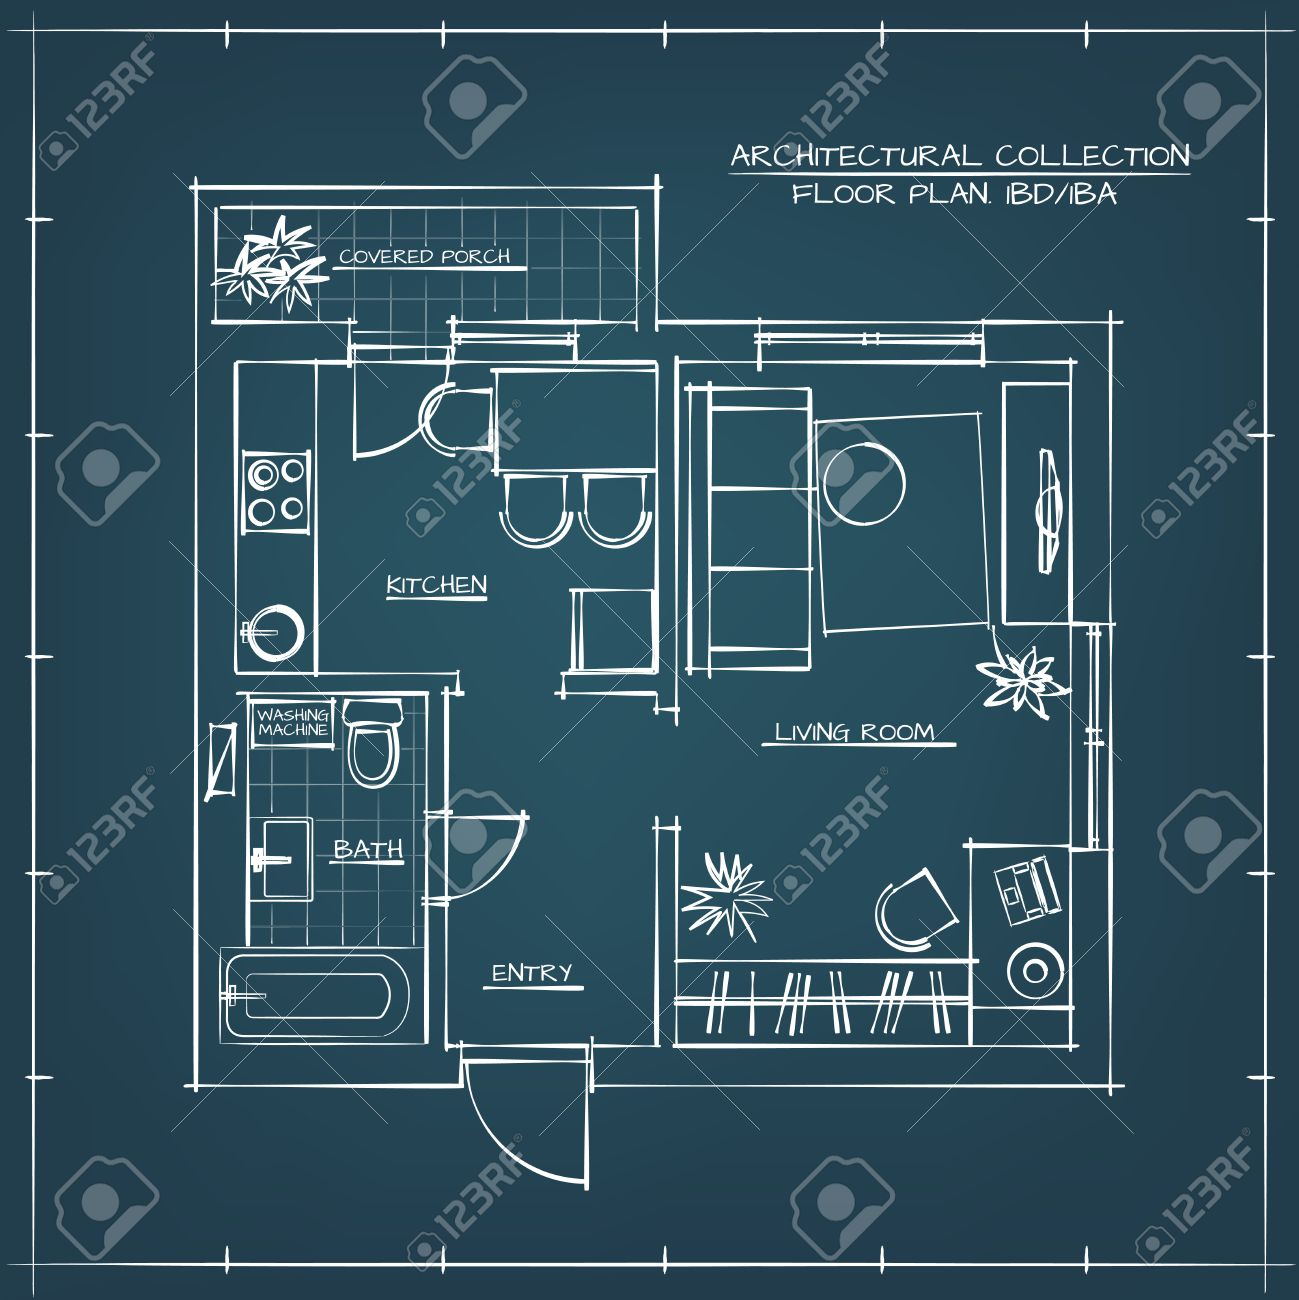 Architectural Hand Drawn Floor Plan Blueprint One Bedroom Apartment Royalty Free Cliparts Vectors And Stock Illustration Image 55412708